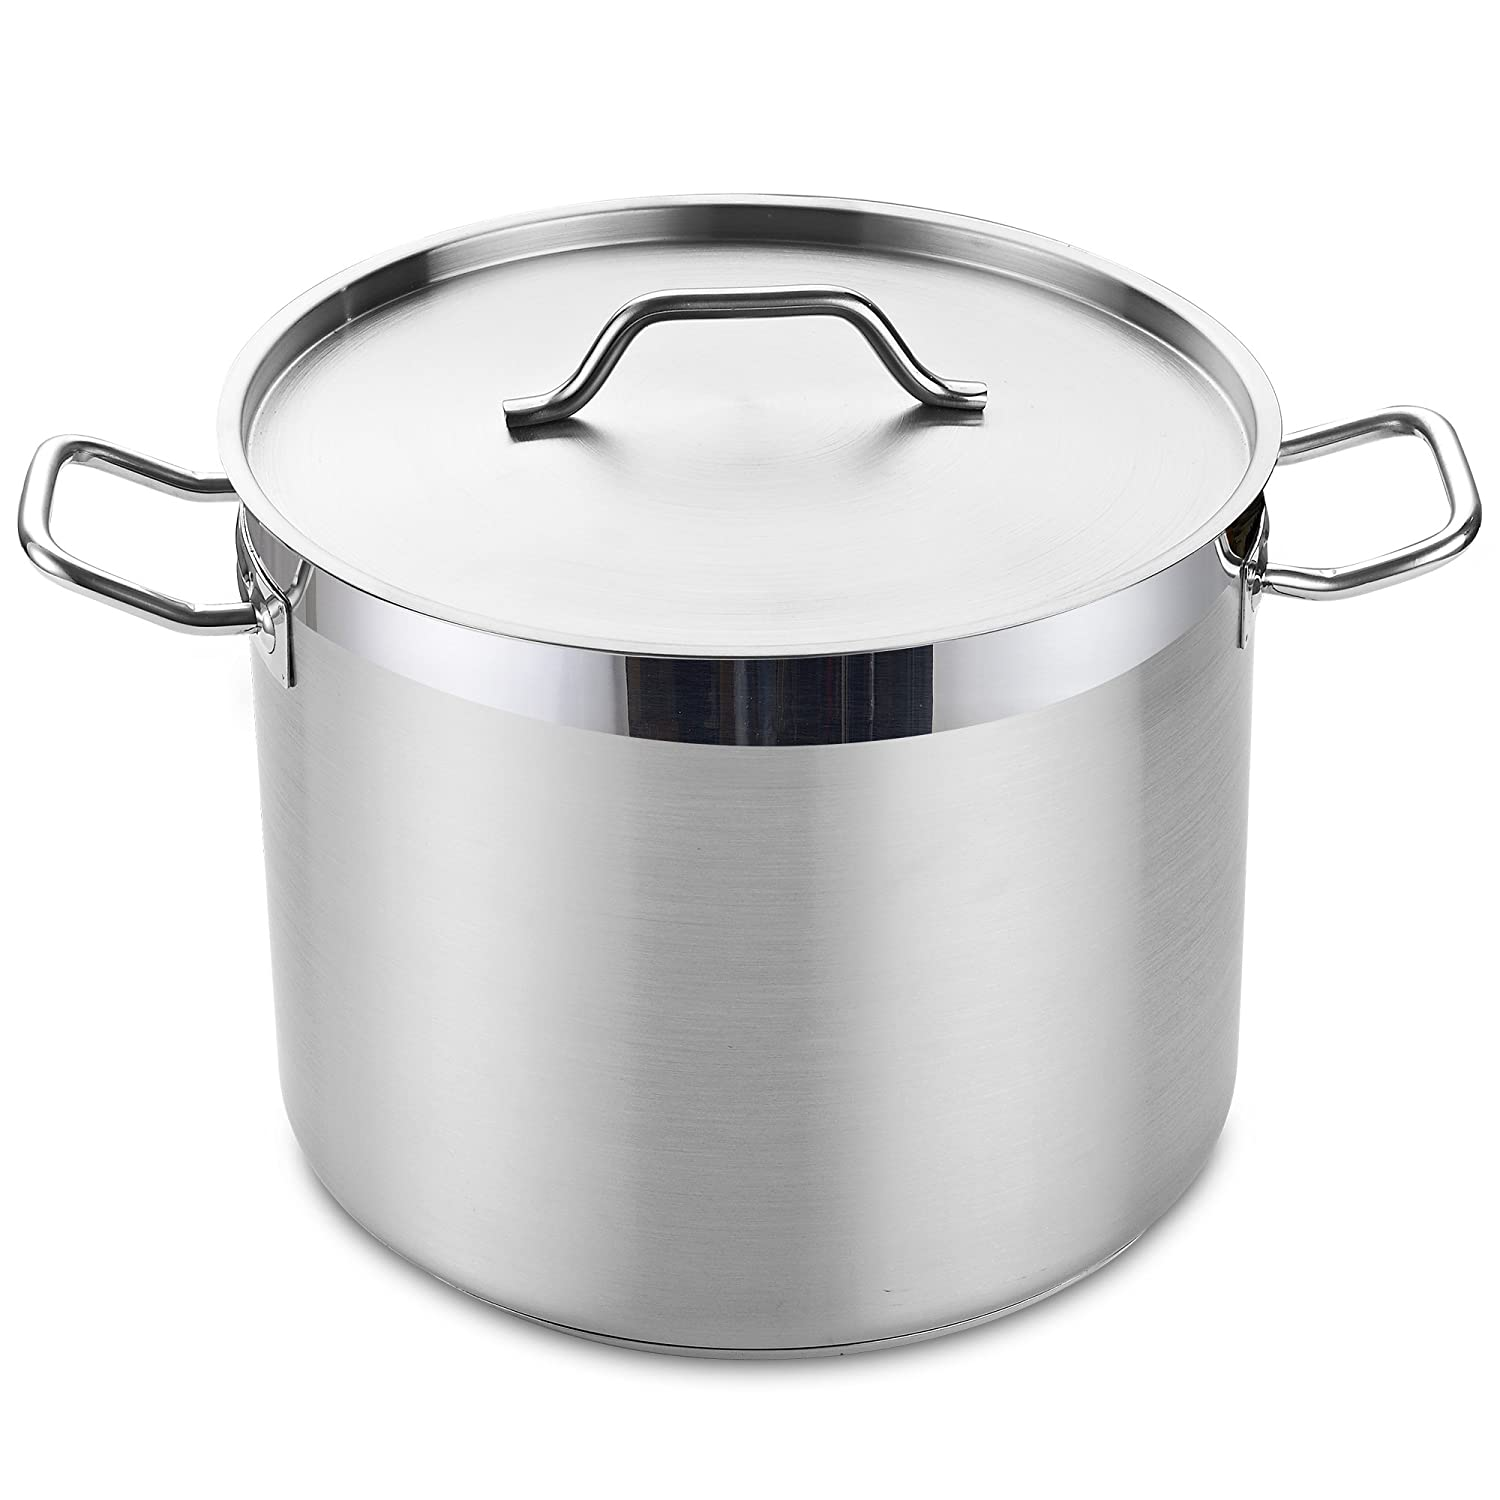 Cooks Standard 02584 Classic Stainless Steel Stockpot, 8-Quart, Silver